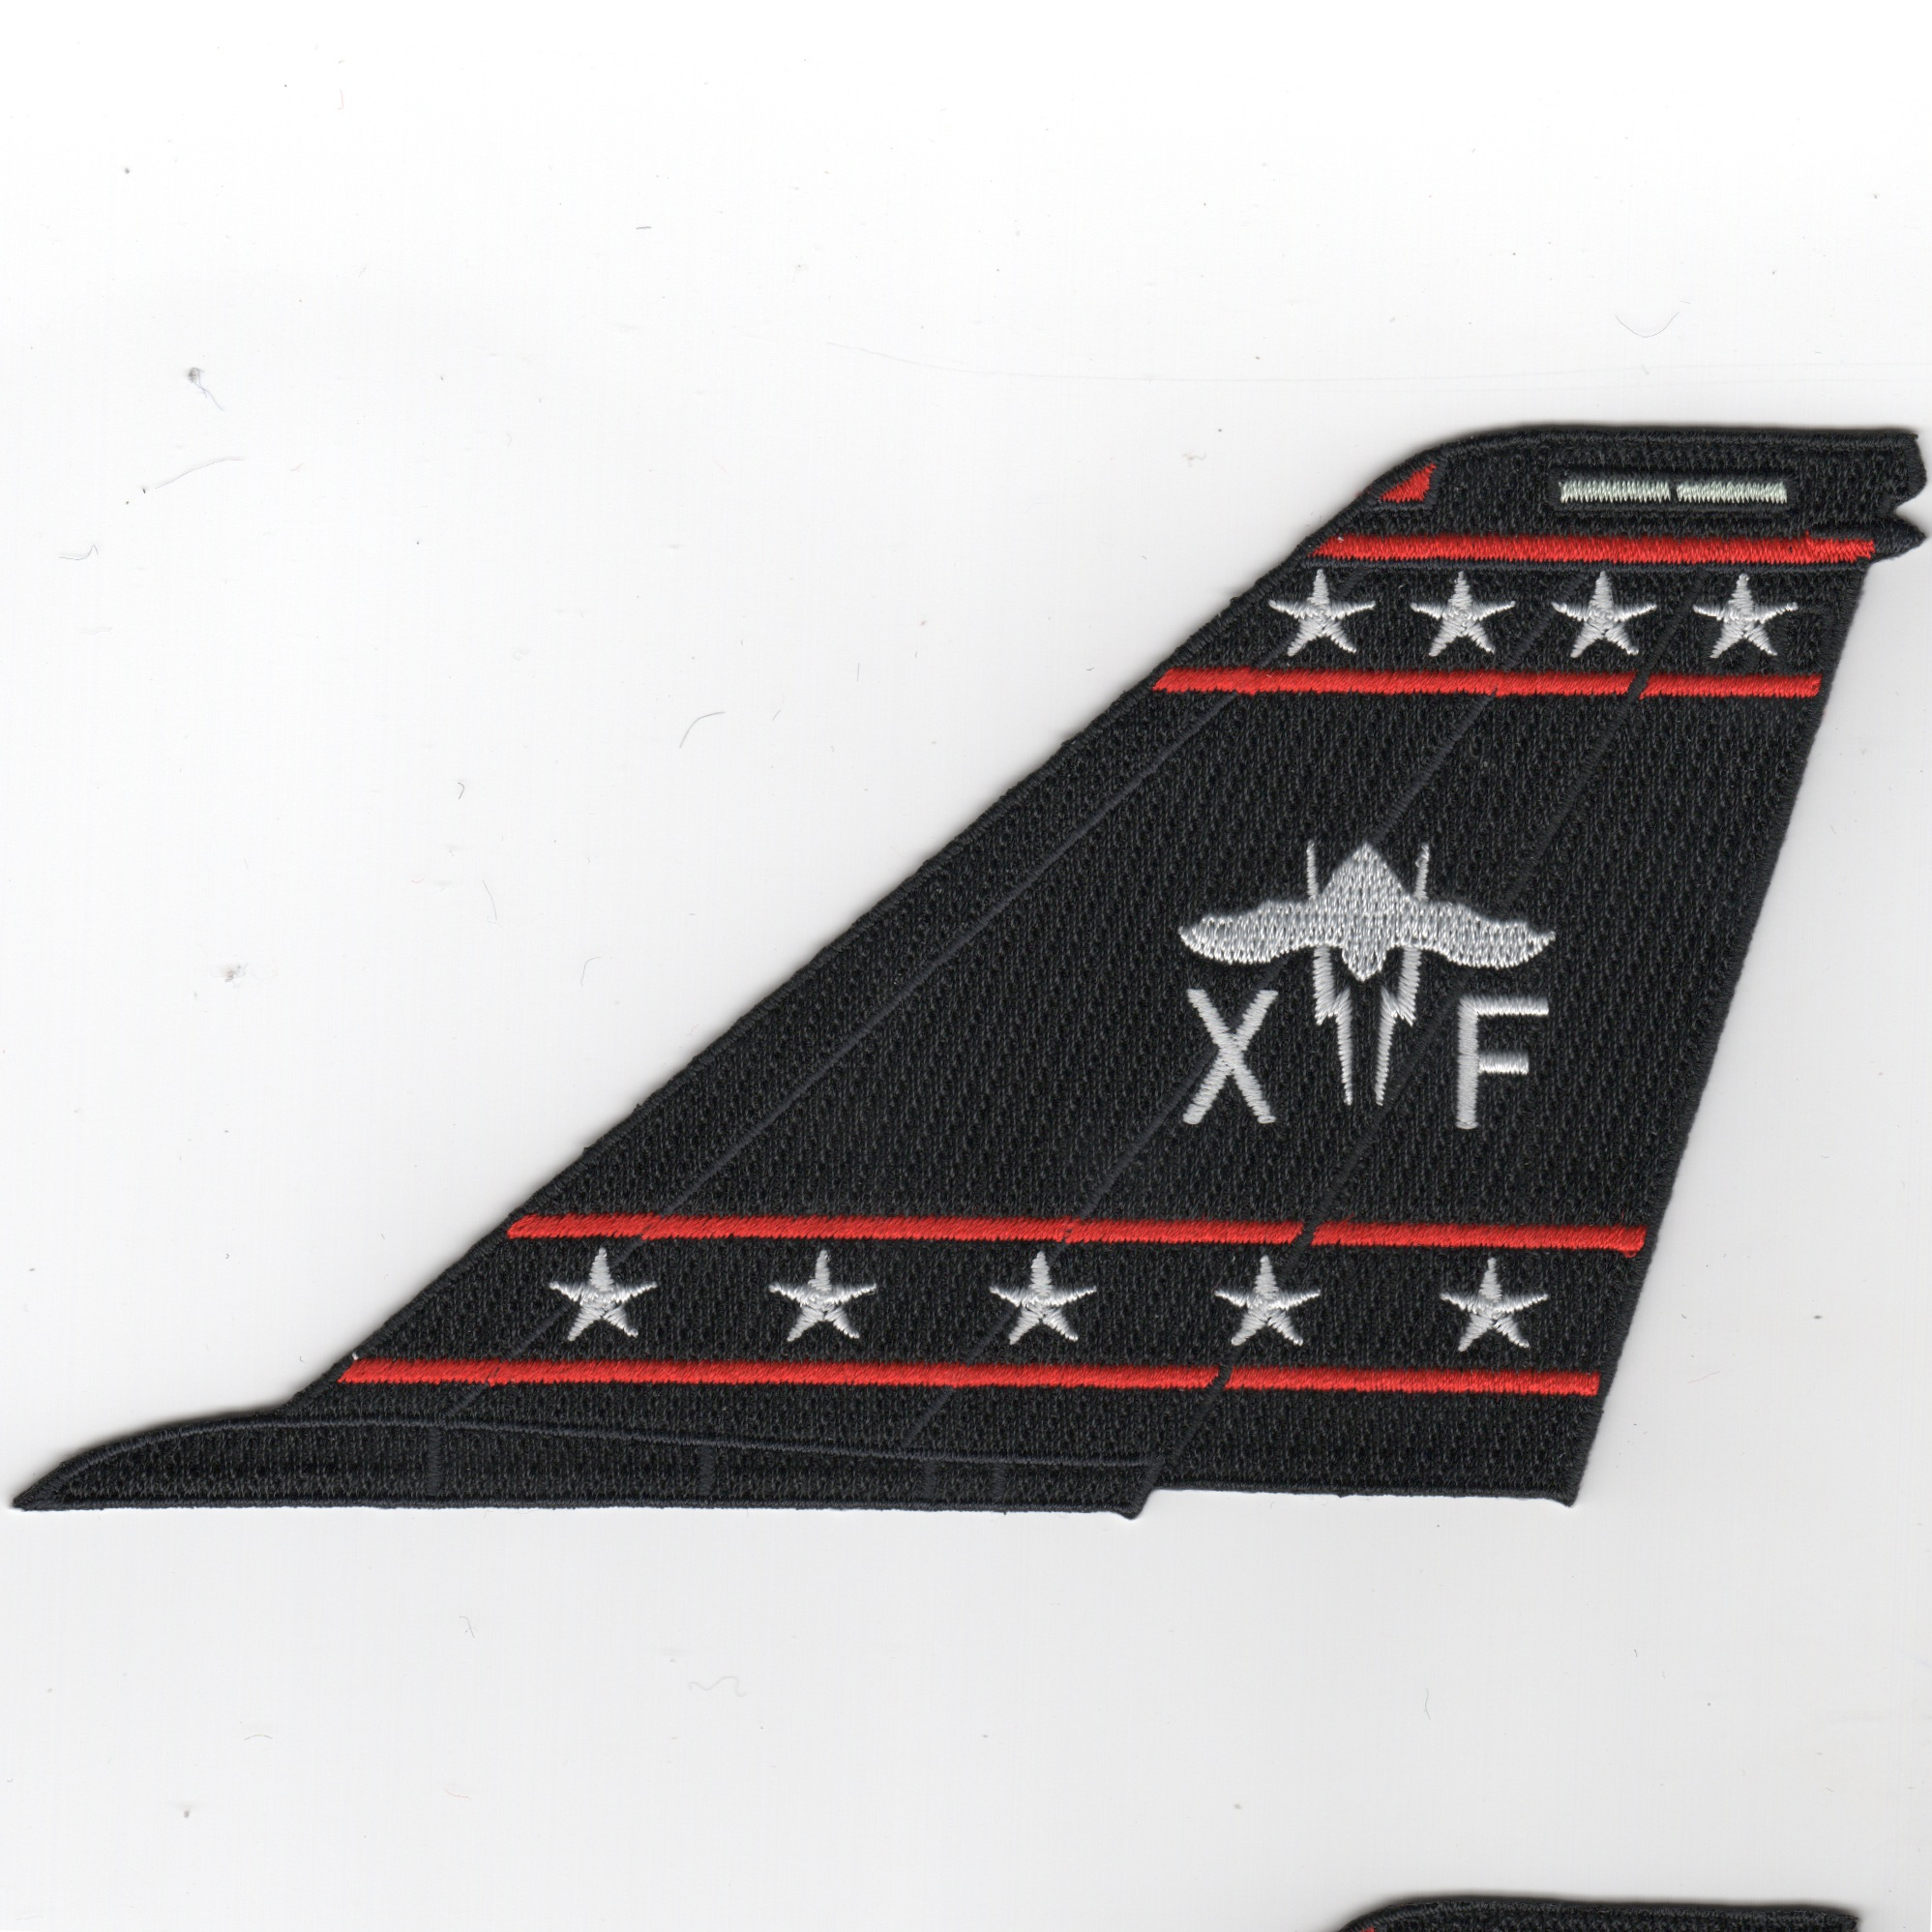 VX-9 'Bat' F-14 Tailfin (No Text/Blk)